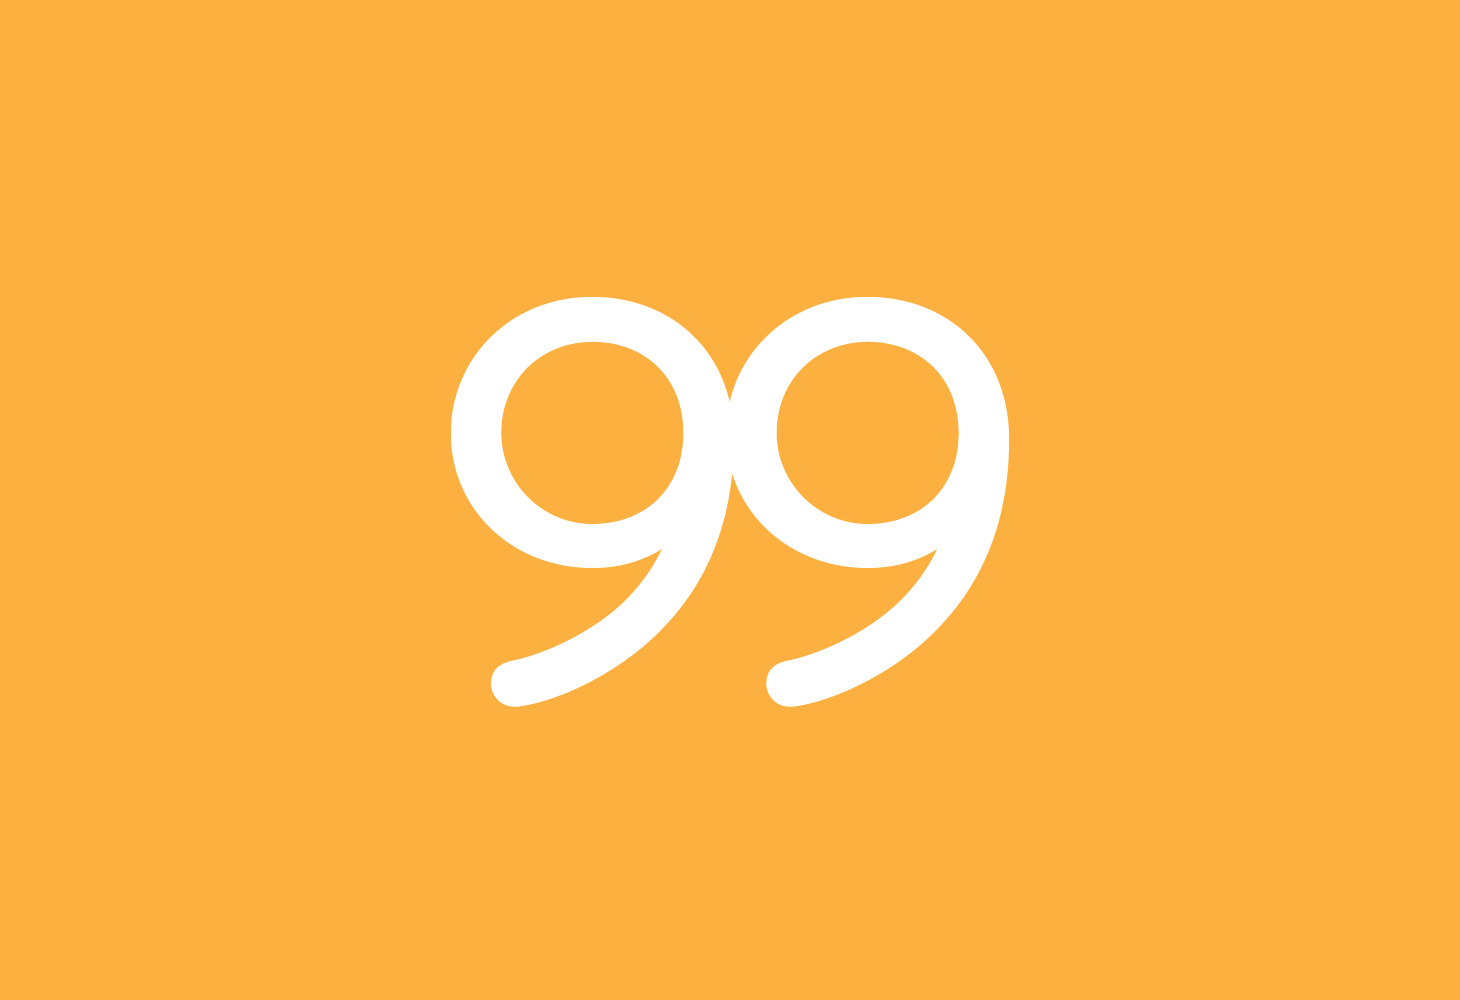 Compare99 - Logotype